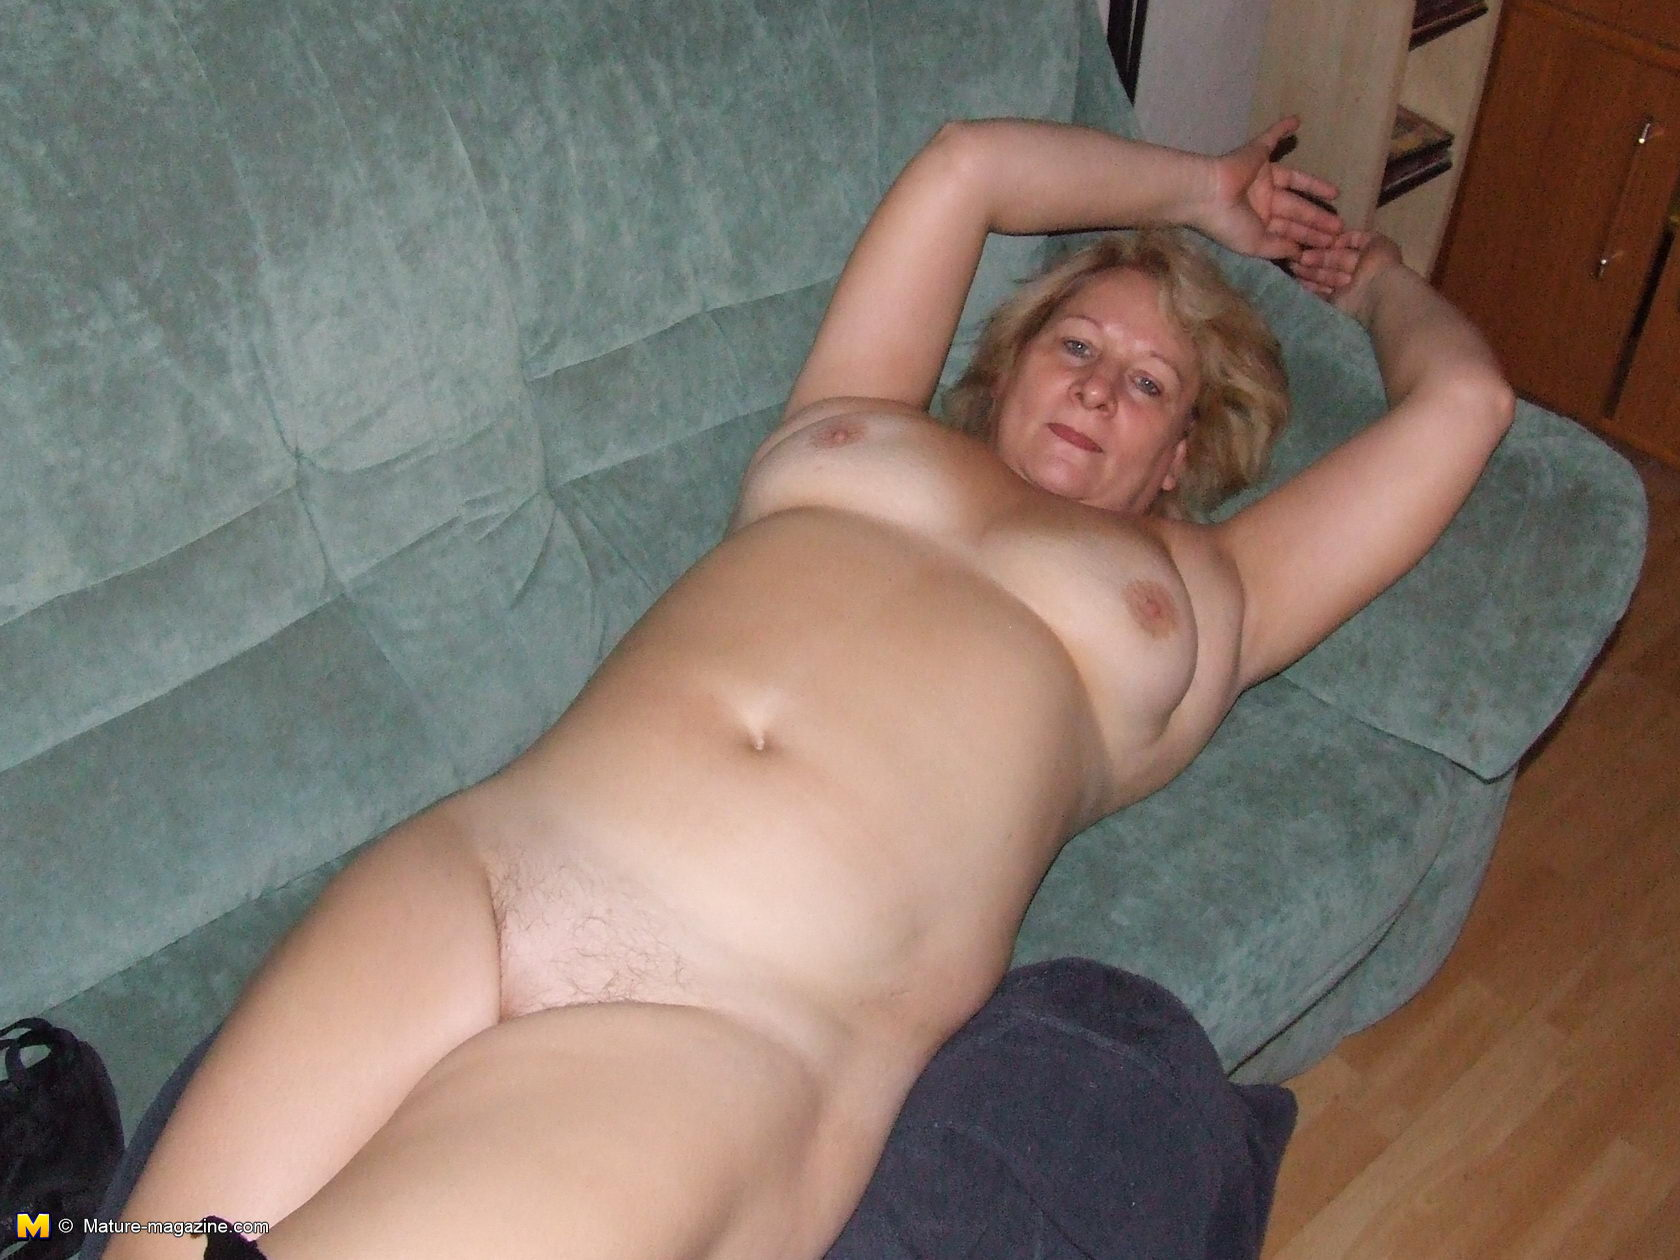 slutty older women naked